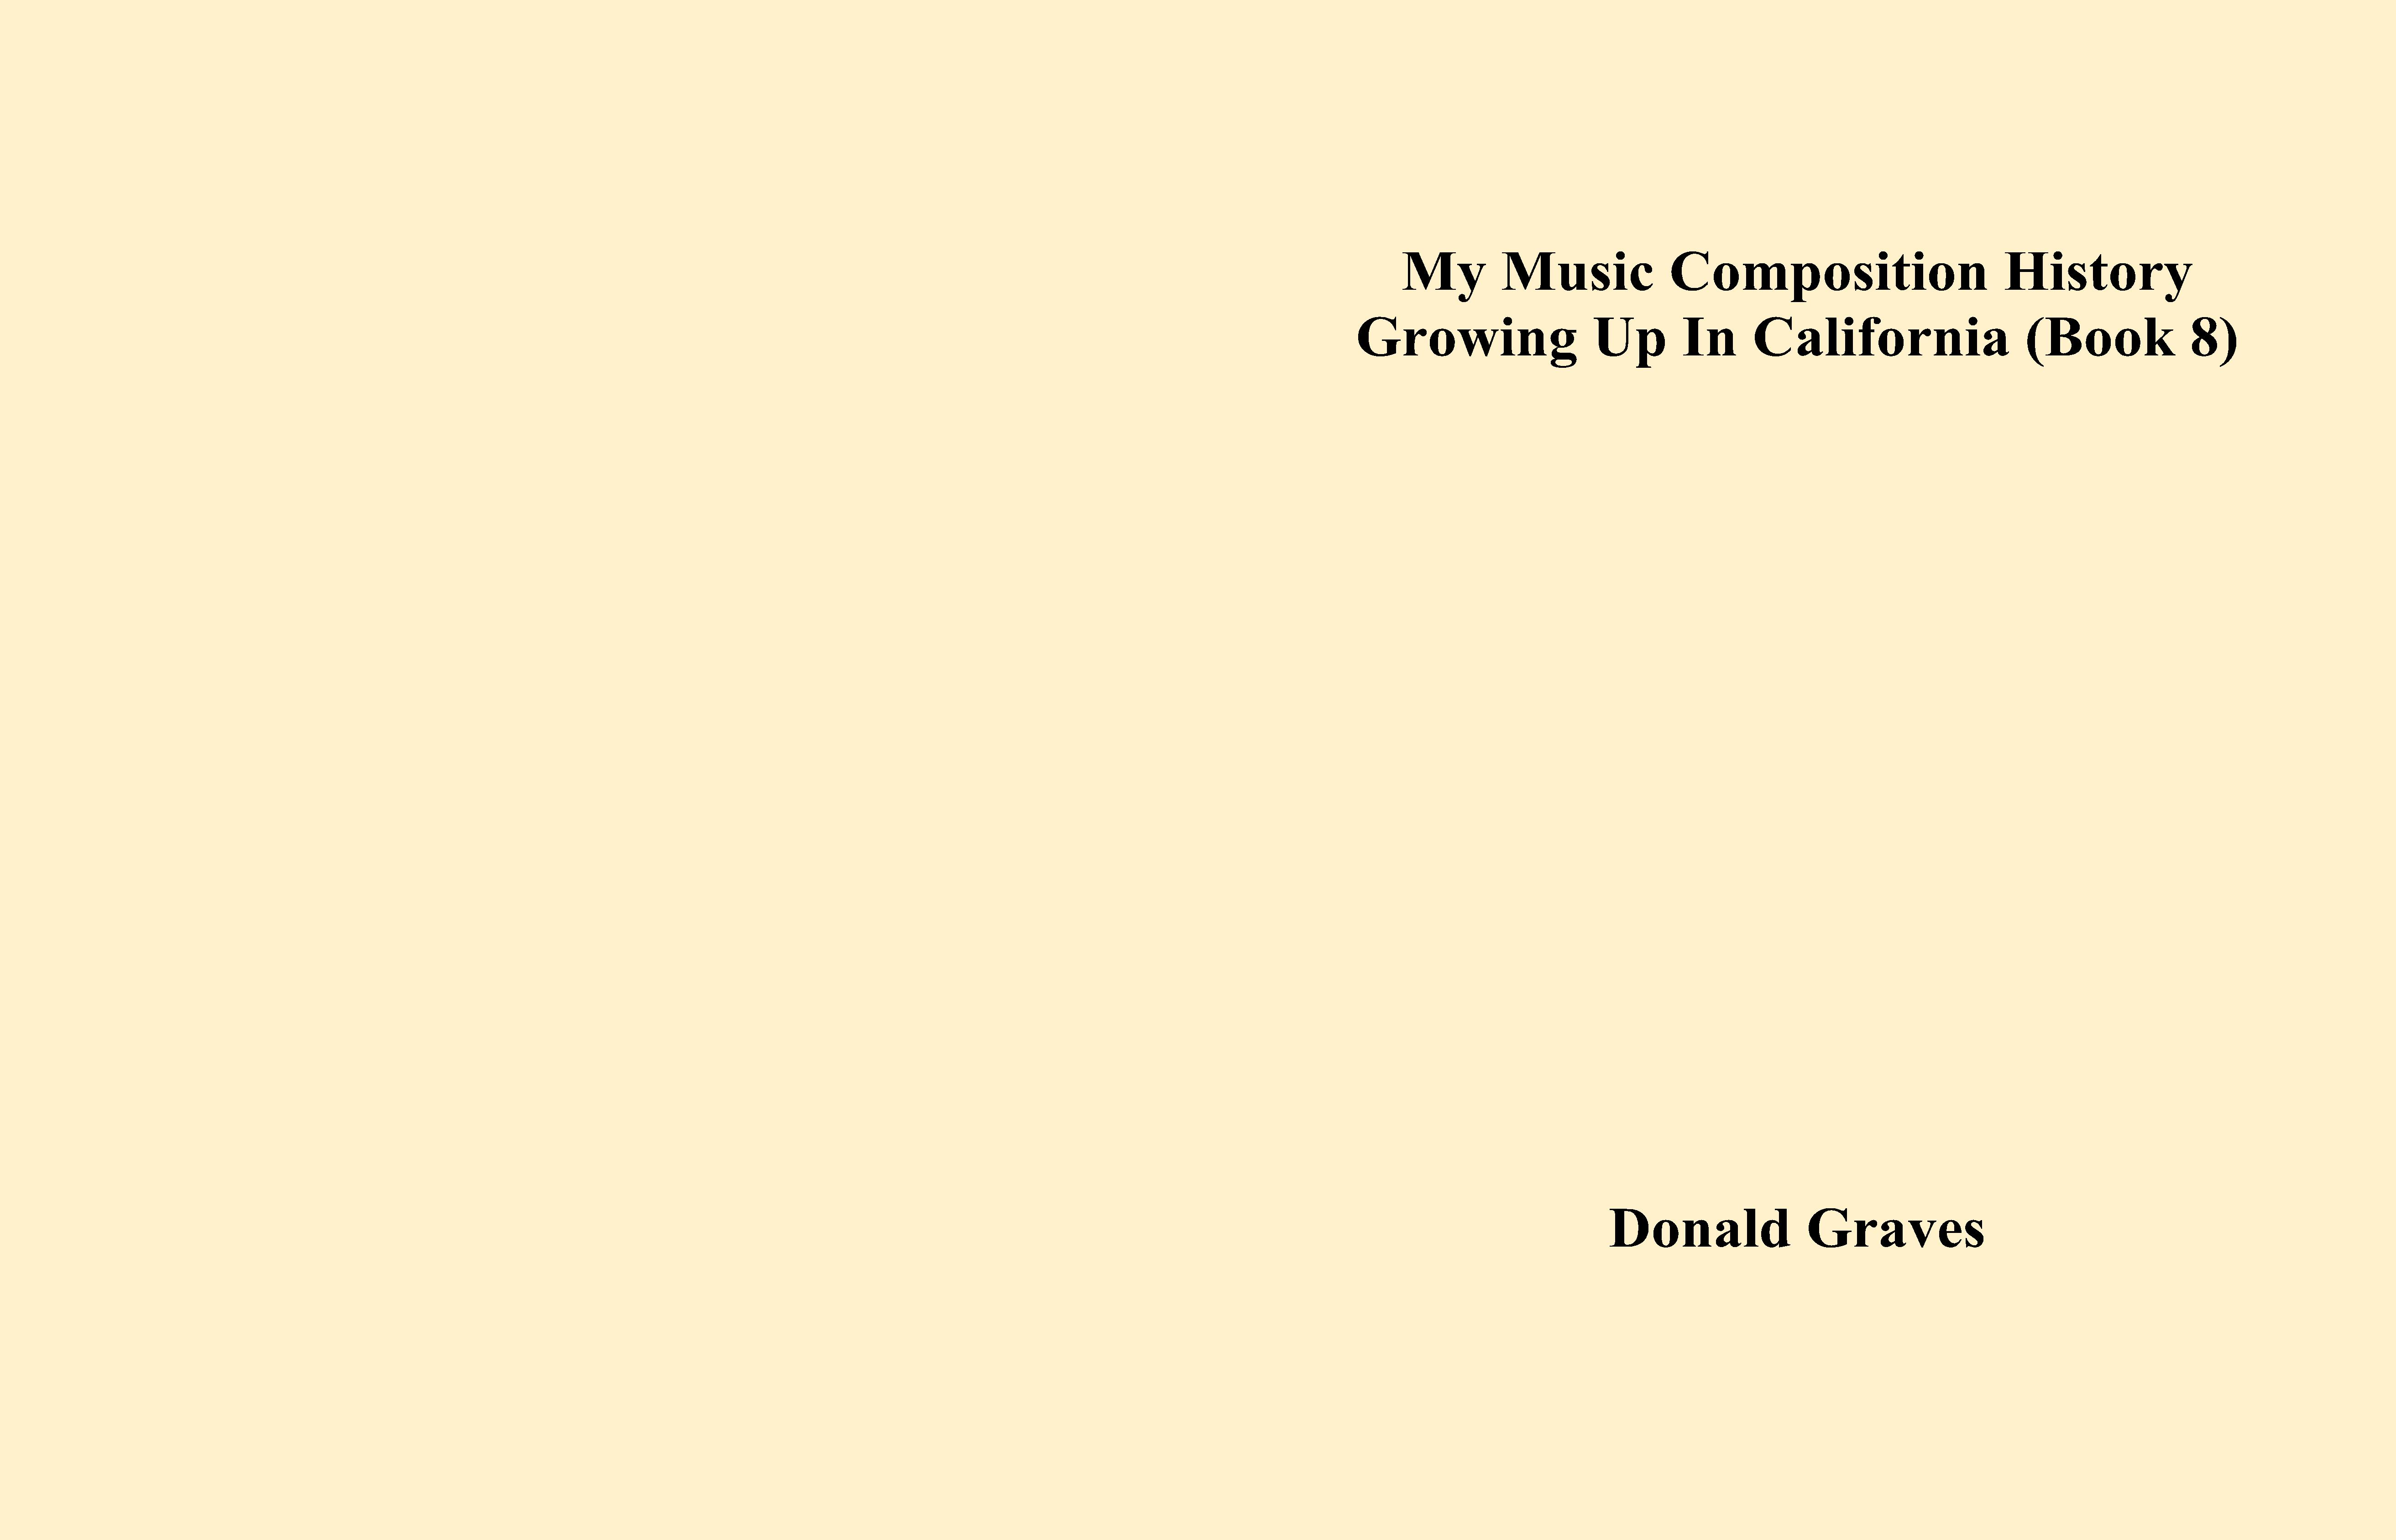 My Music Composition History Growing Up In California (Book 8) cover image